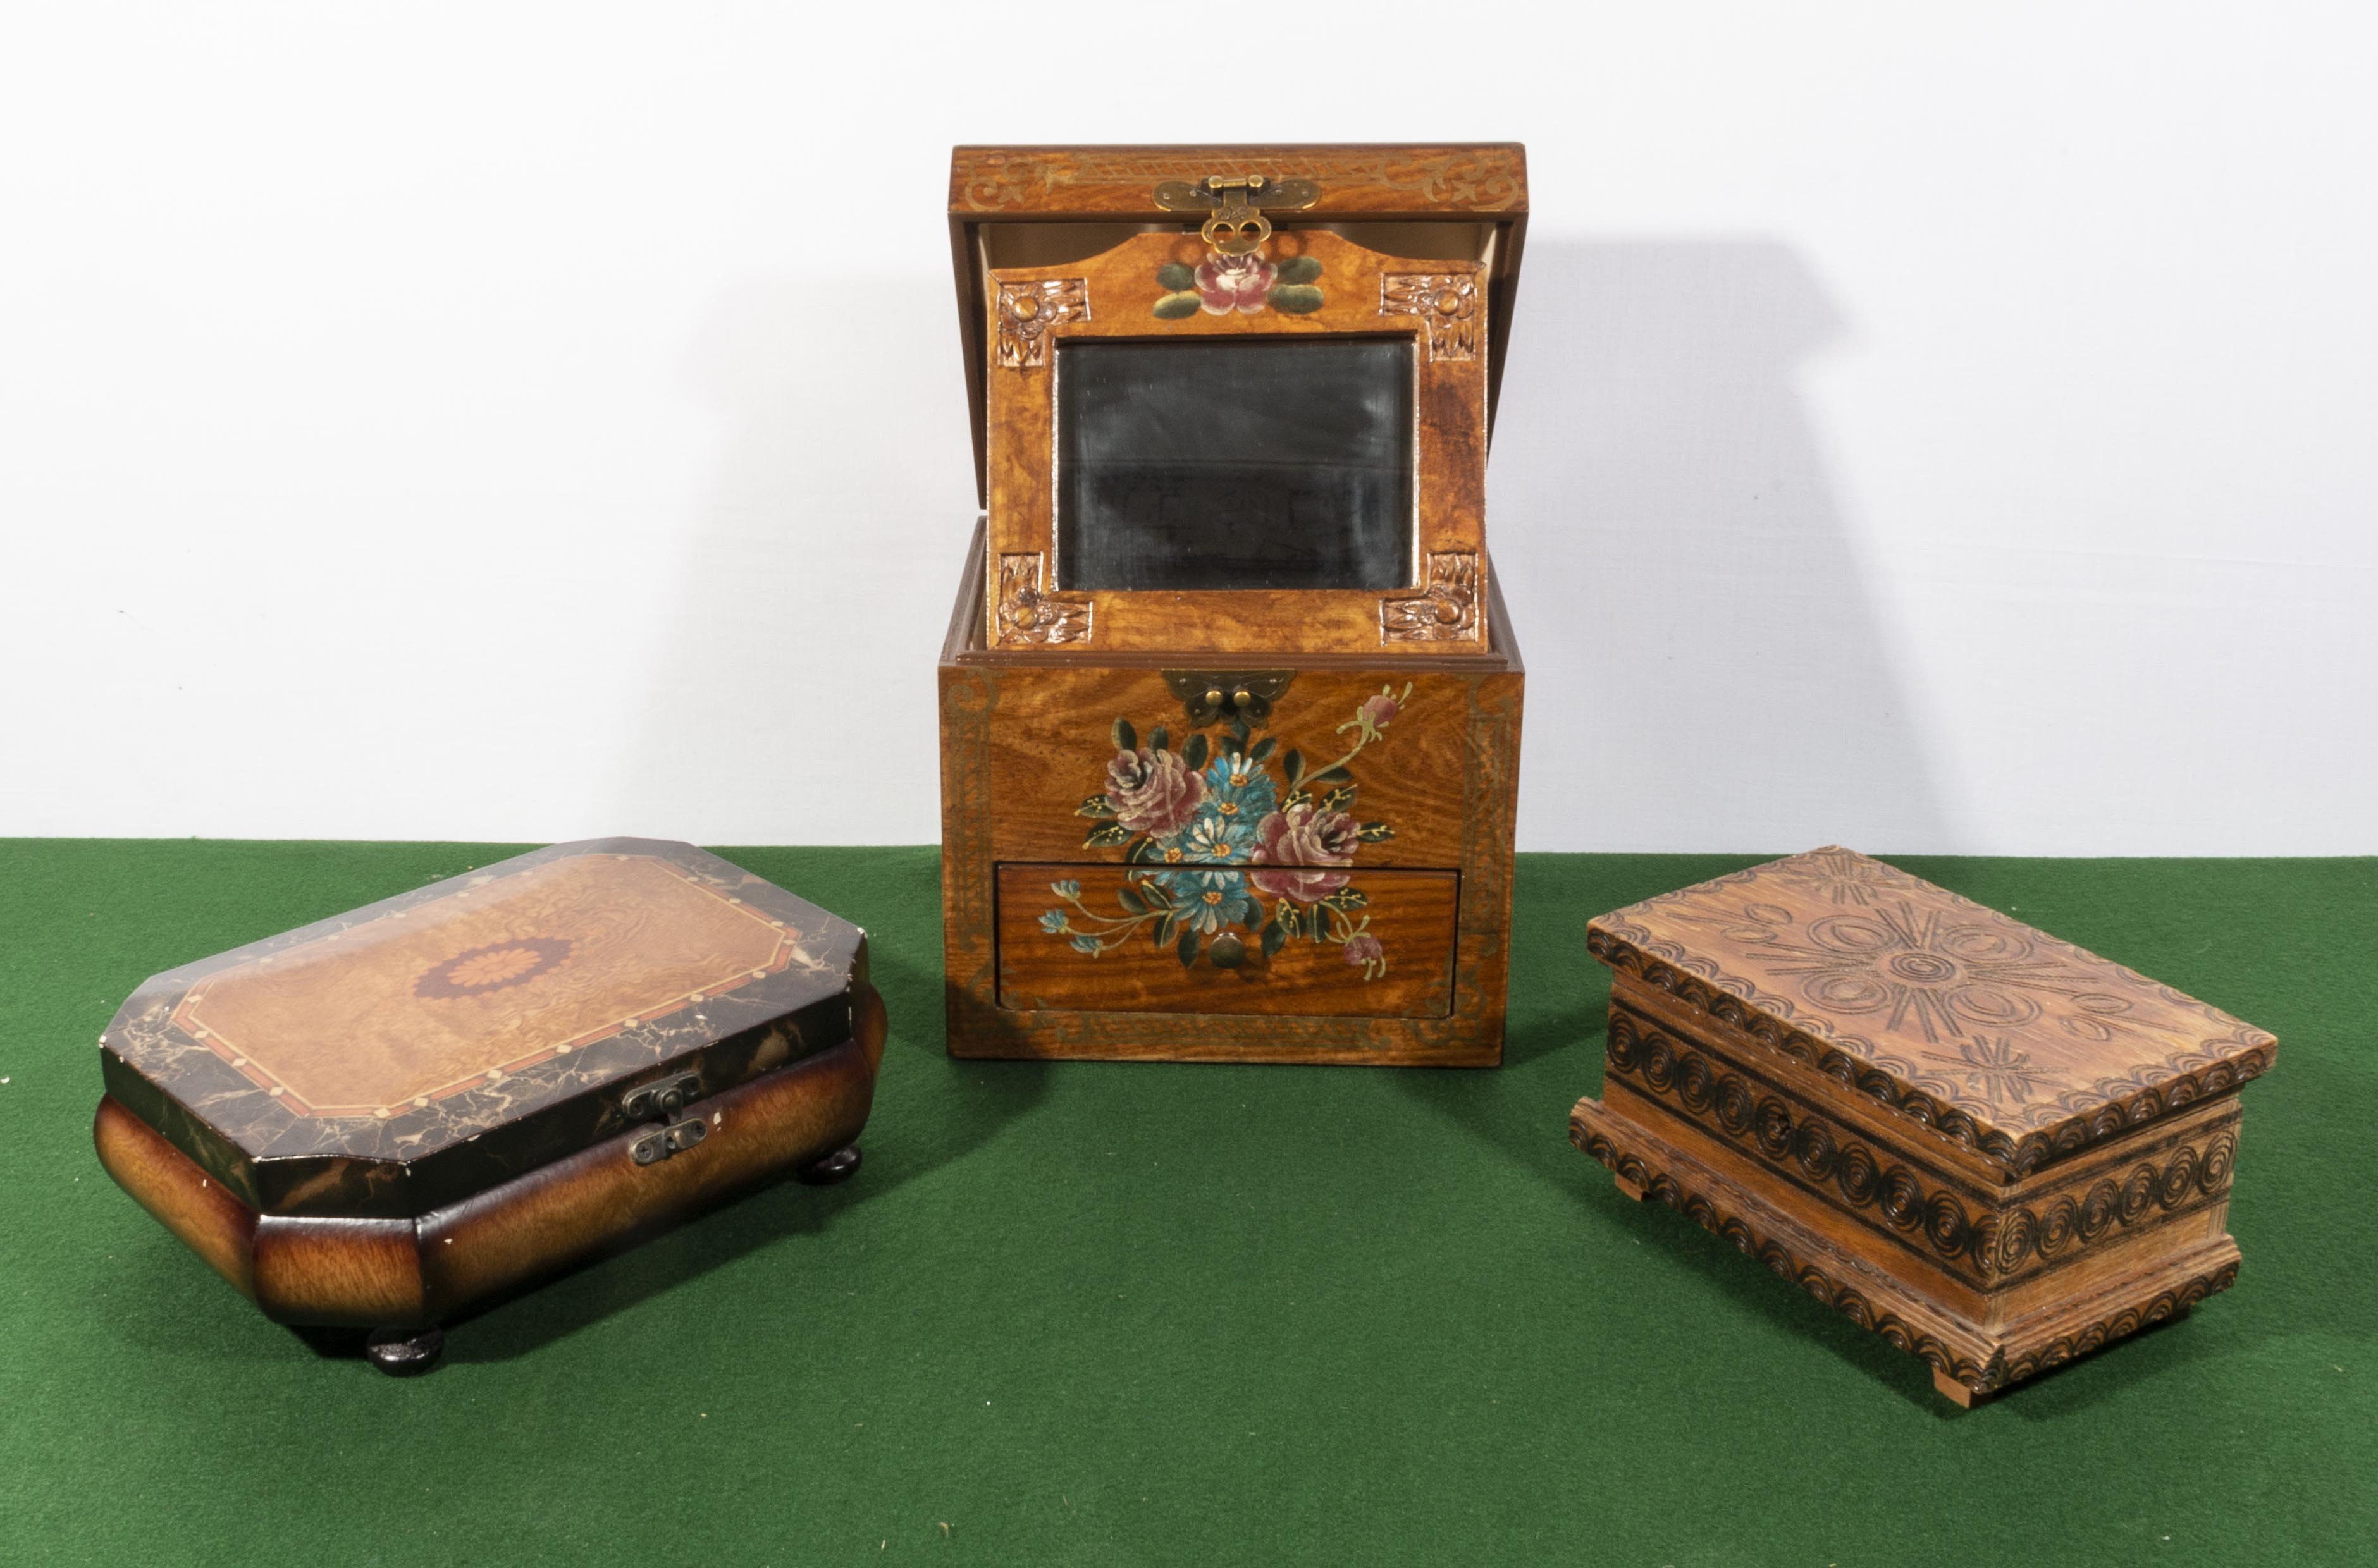 Lot 25 - Three decorative wooden boxes